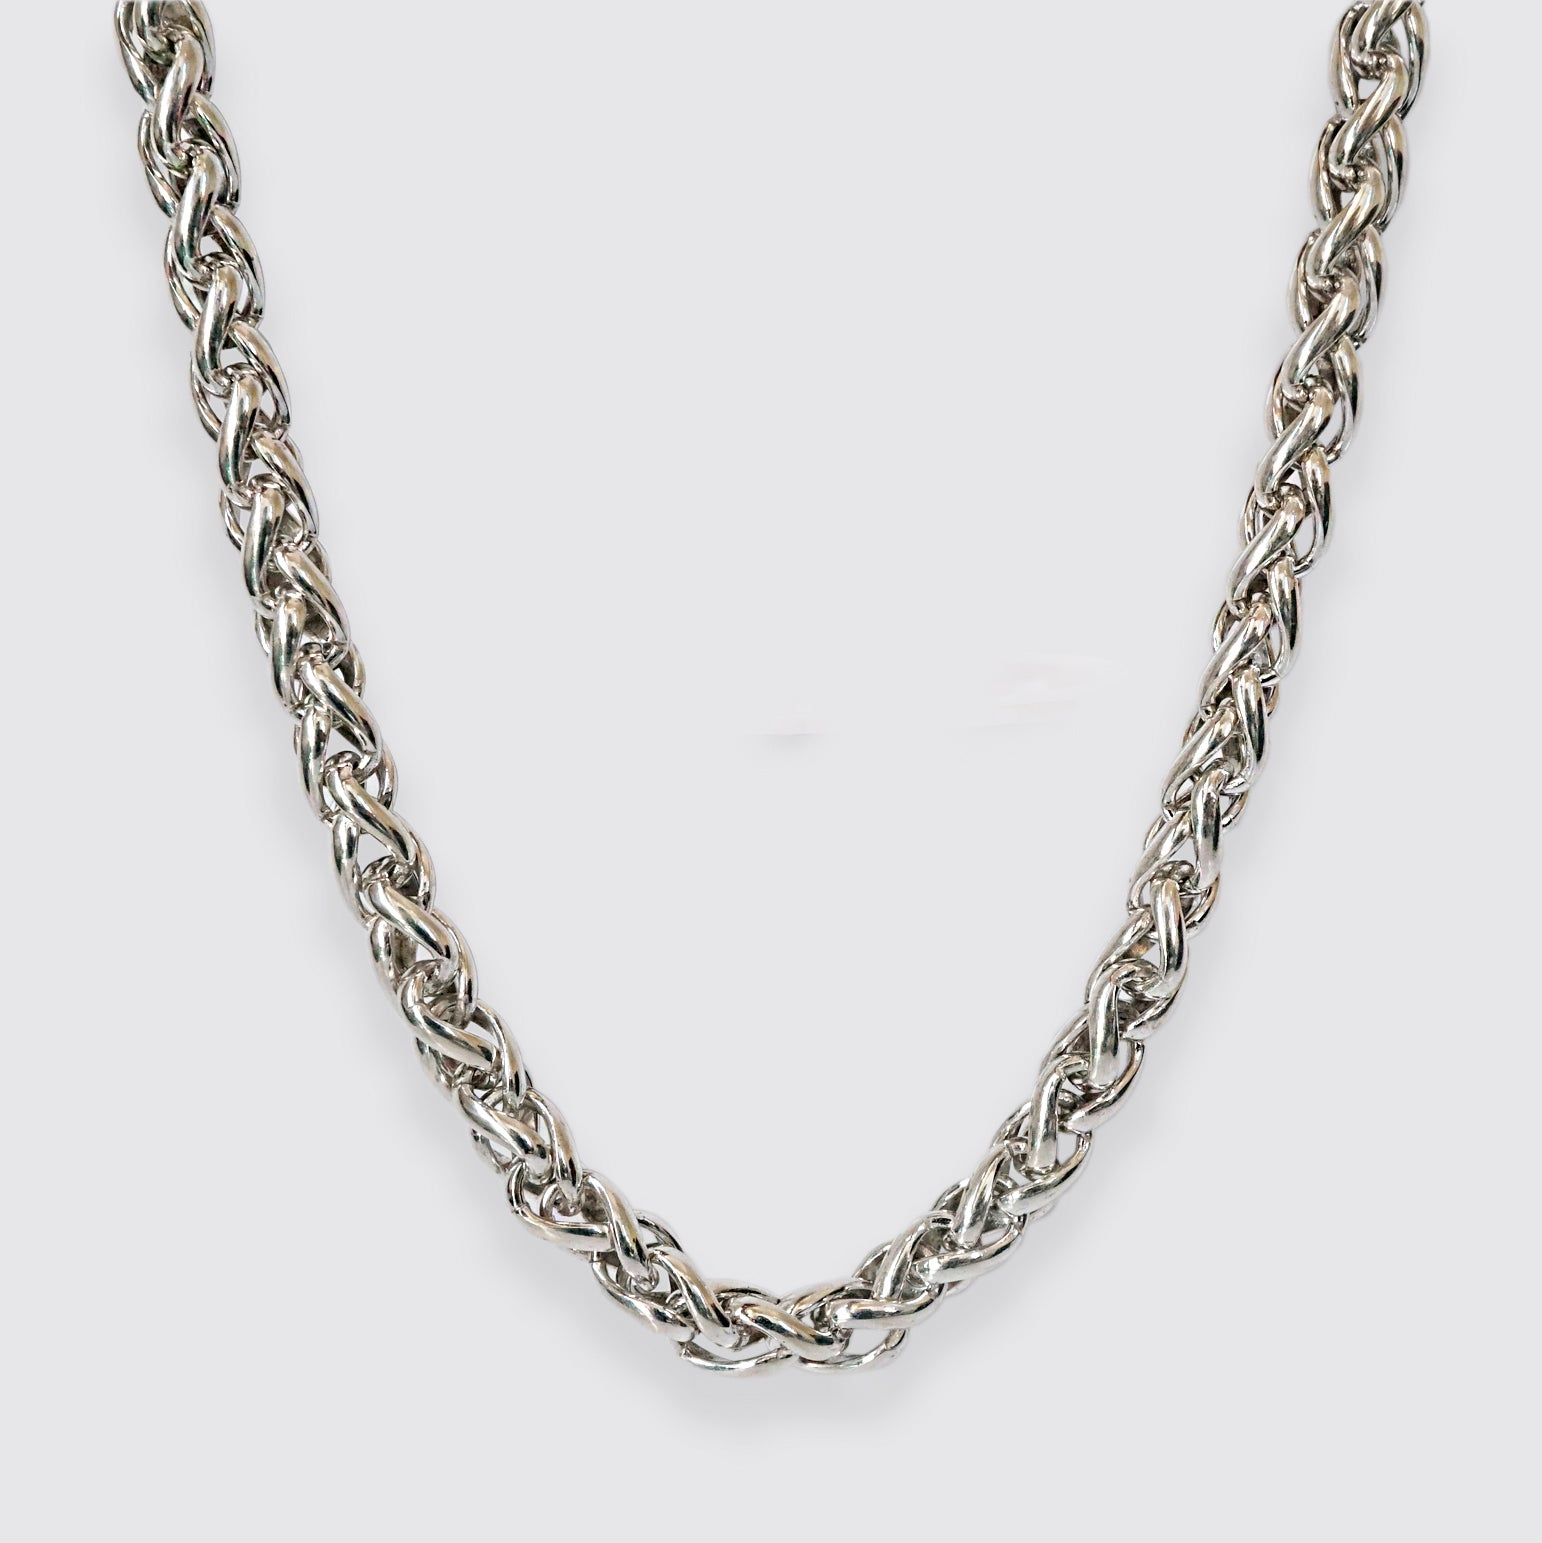 Spiral Chain Necklace, 4mm